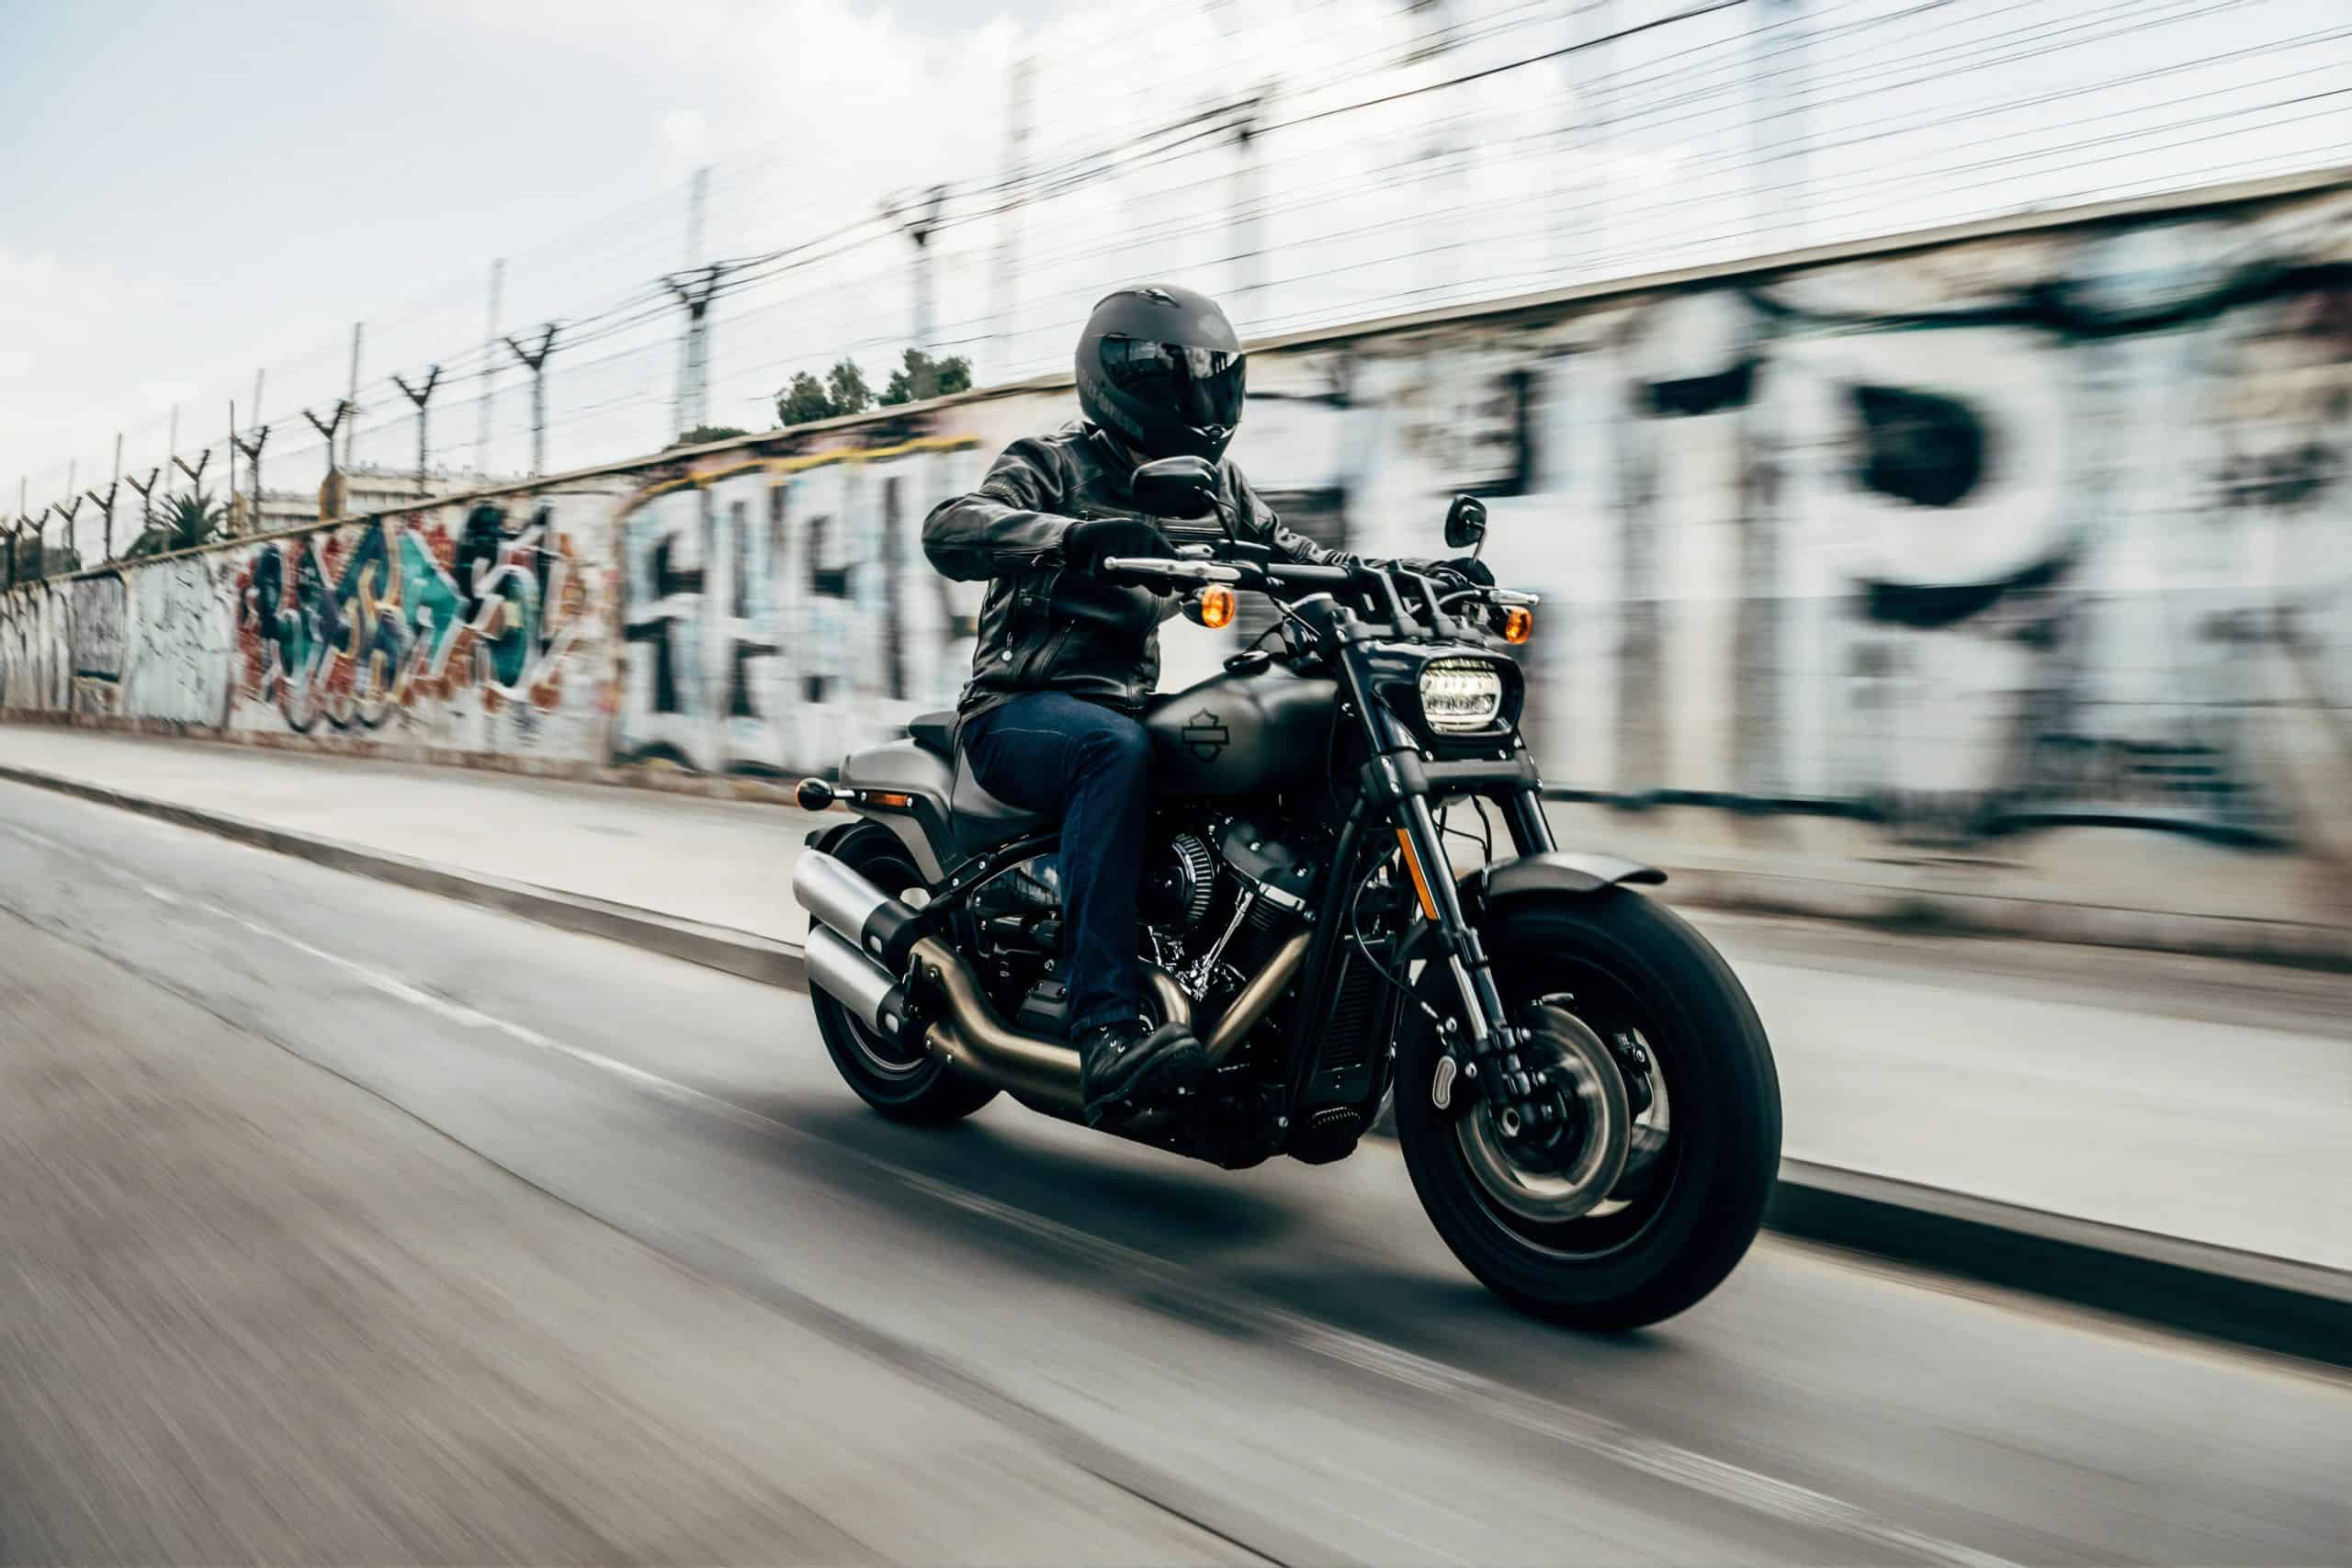 Five Biggest Benefits Of Riding A Motorcycle For Beginners